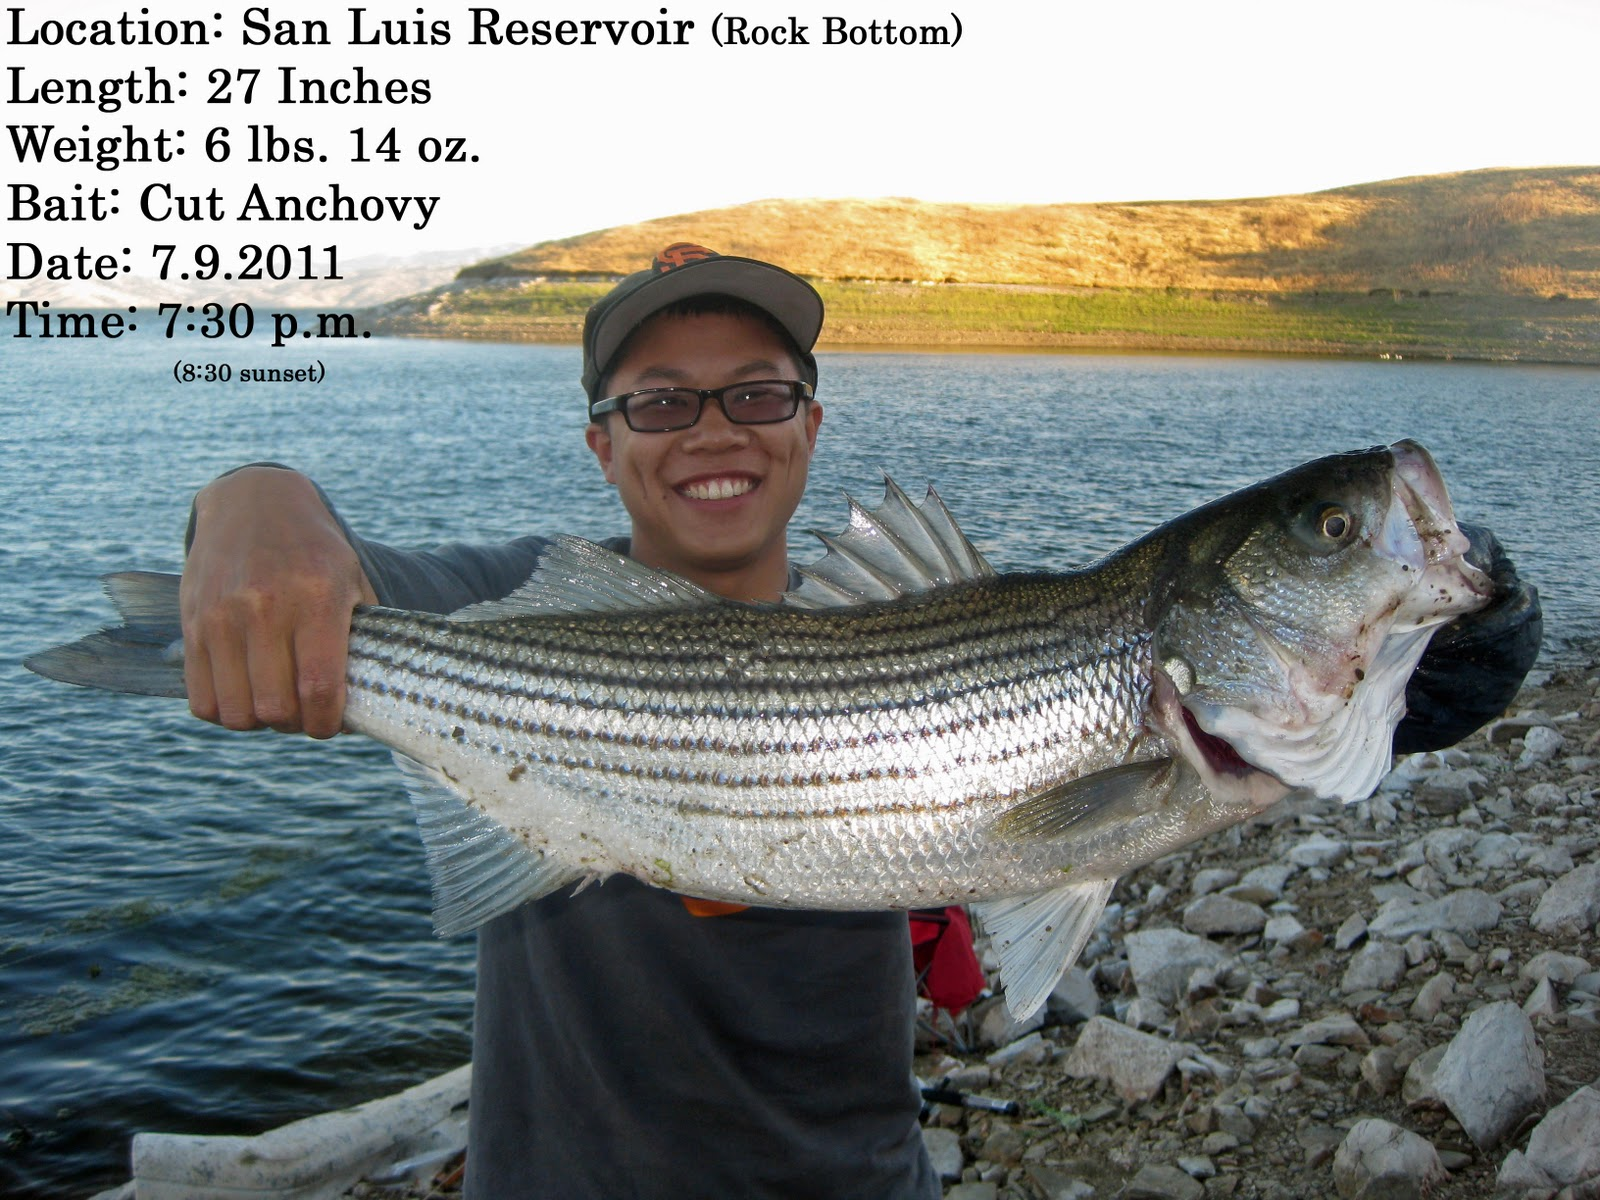 Awayken my heart fishing 2011 undergraduate degree 3 for San luis reservoir fishing